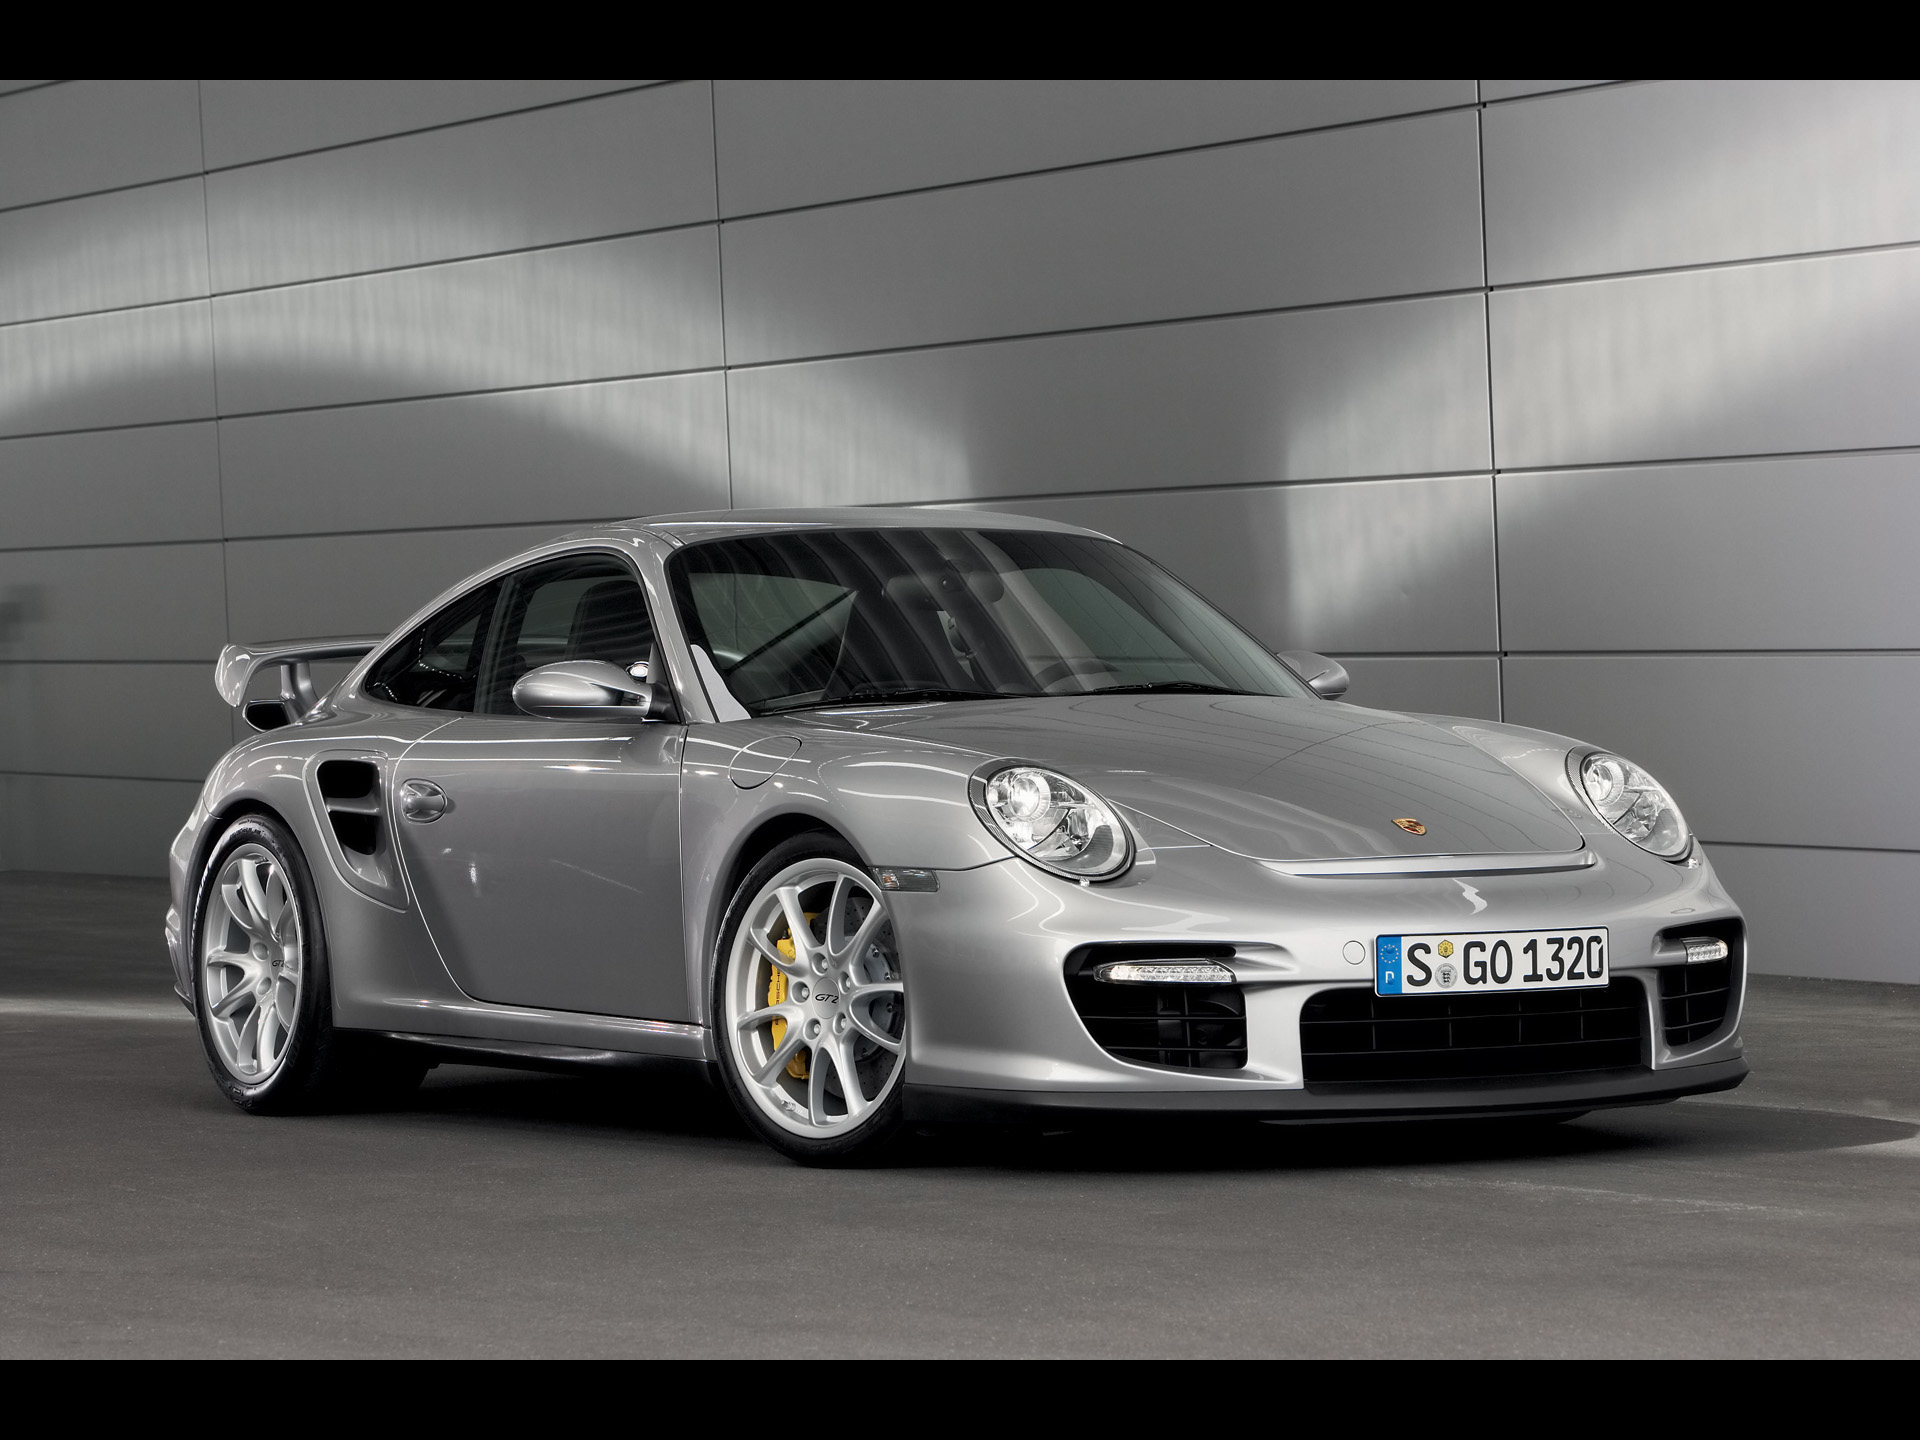 porsche 911 gt2 wallpapers – 1920 x 1440 pixels – 416 kB